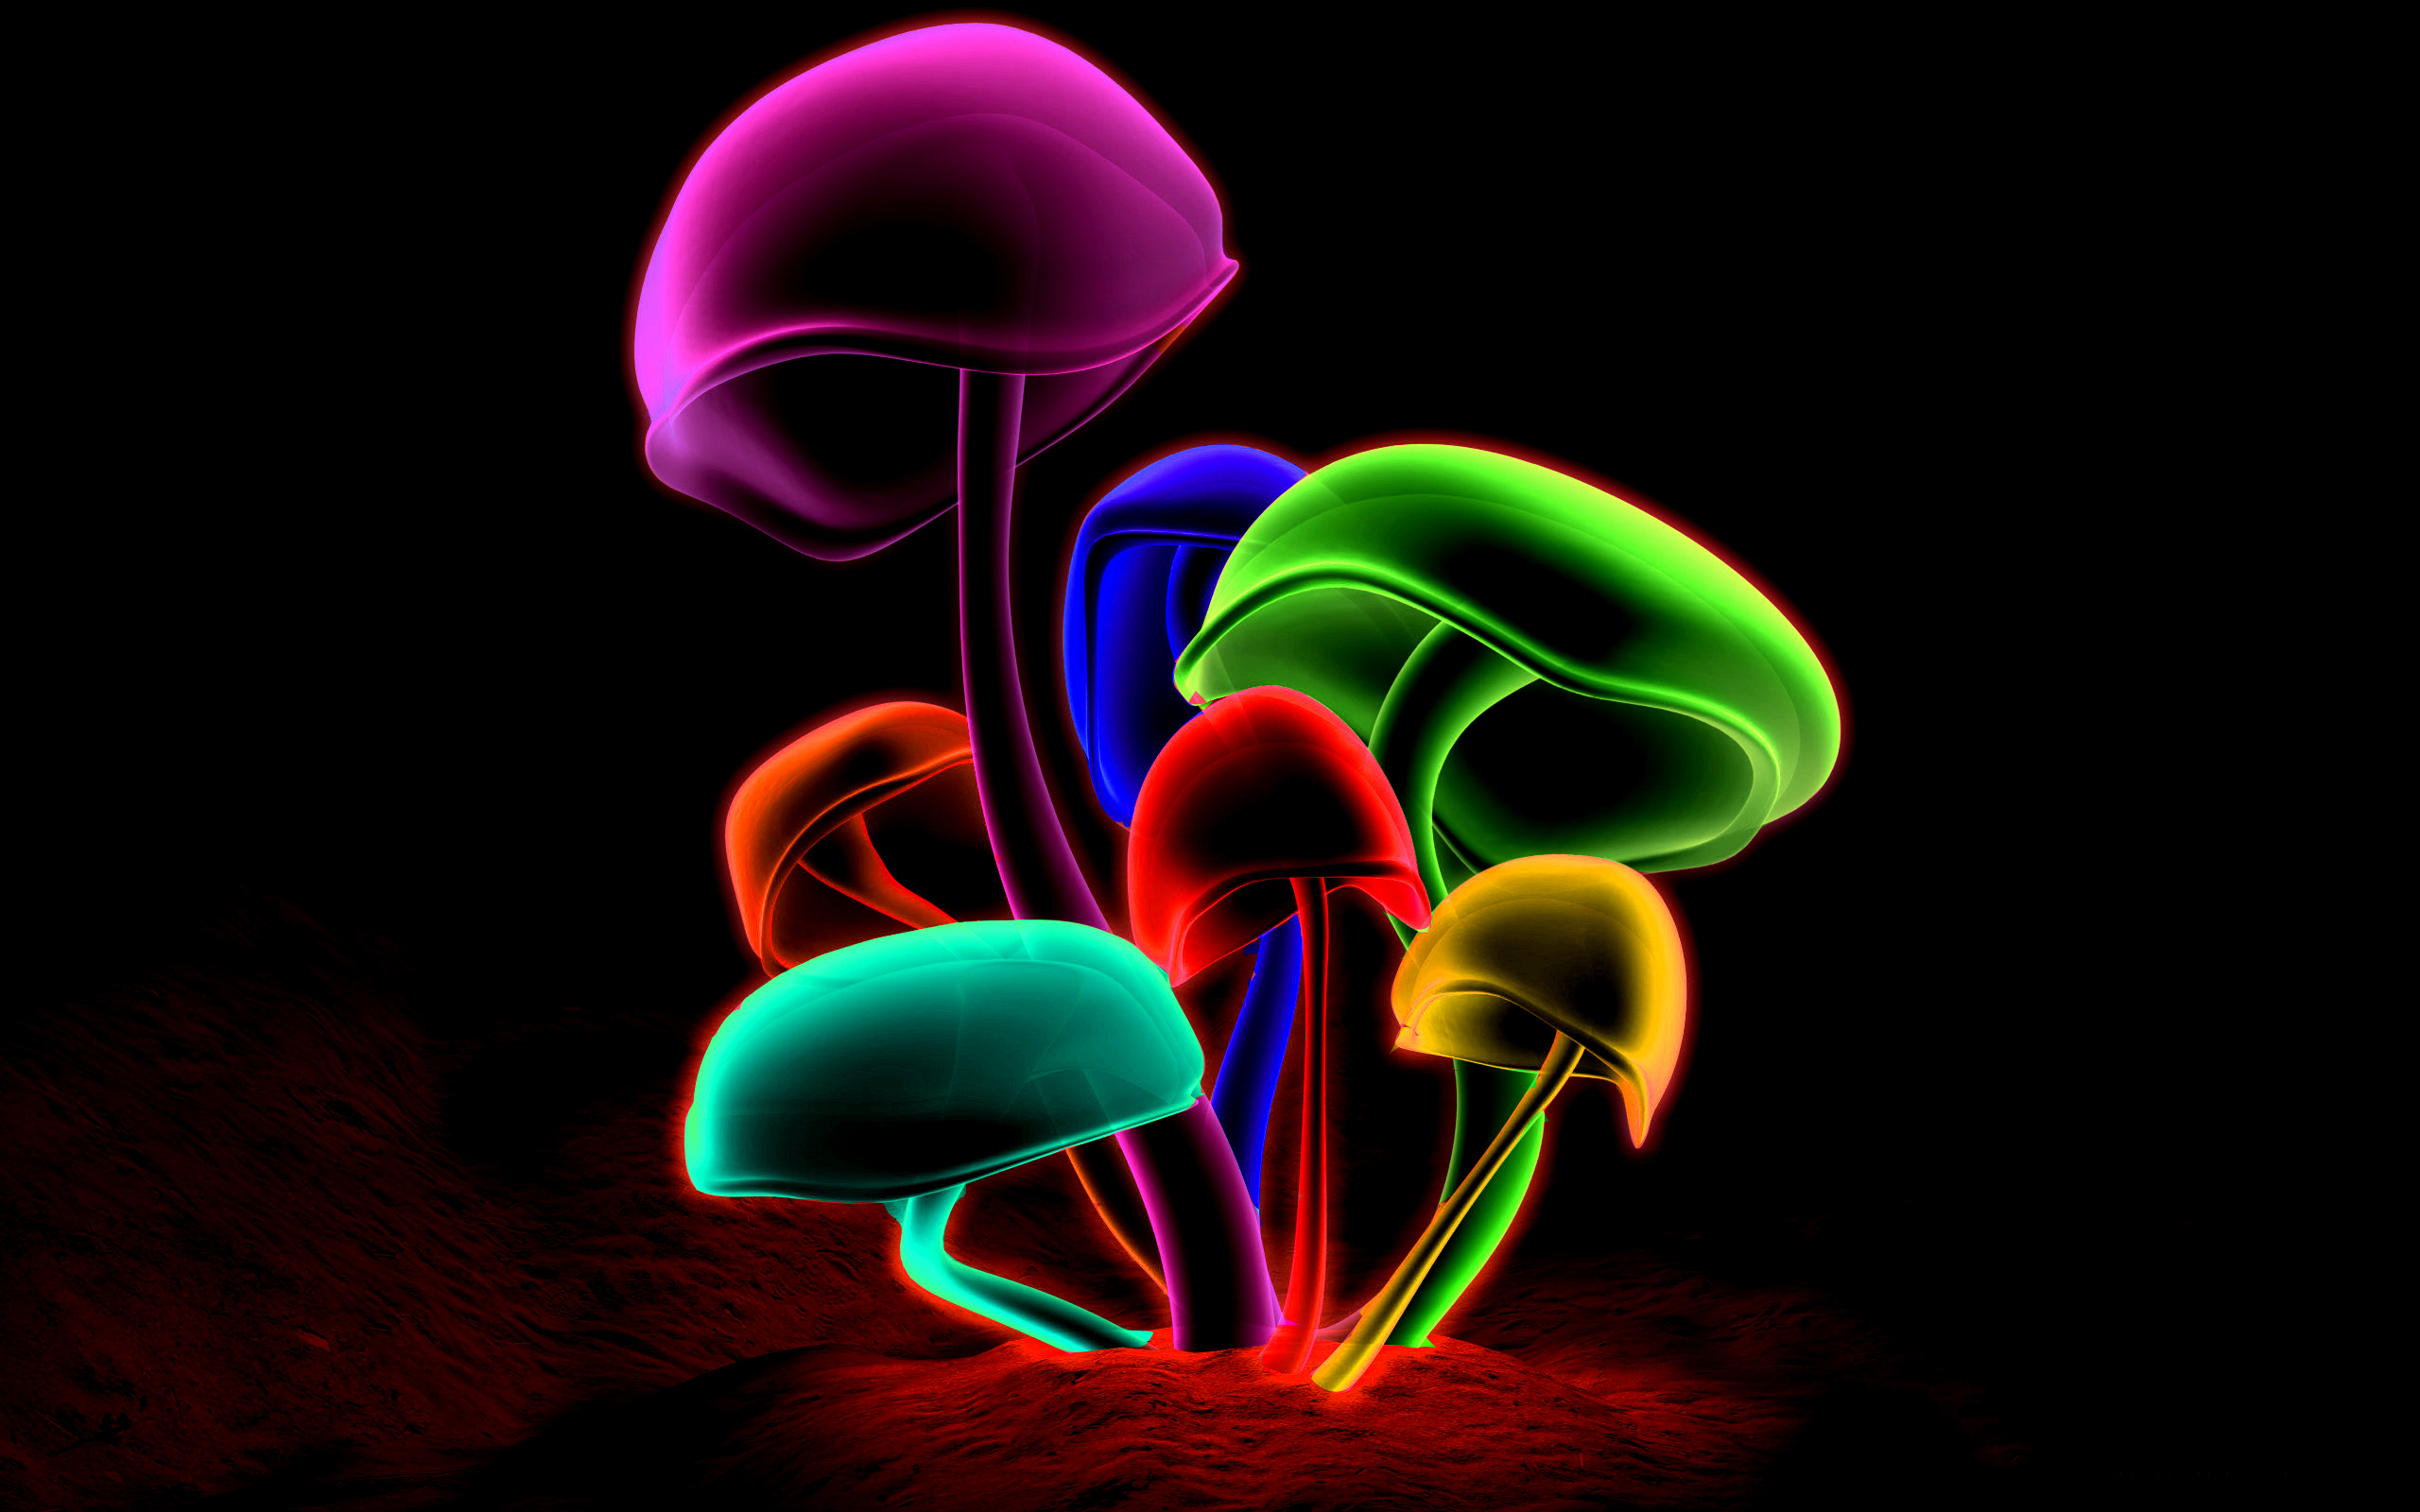 colorful | Best Colorful HD Desktop Wallpapers Pictures Free